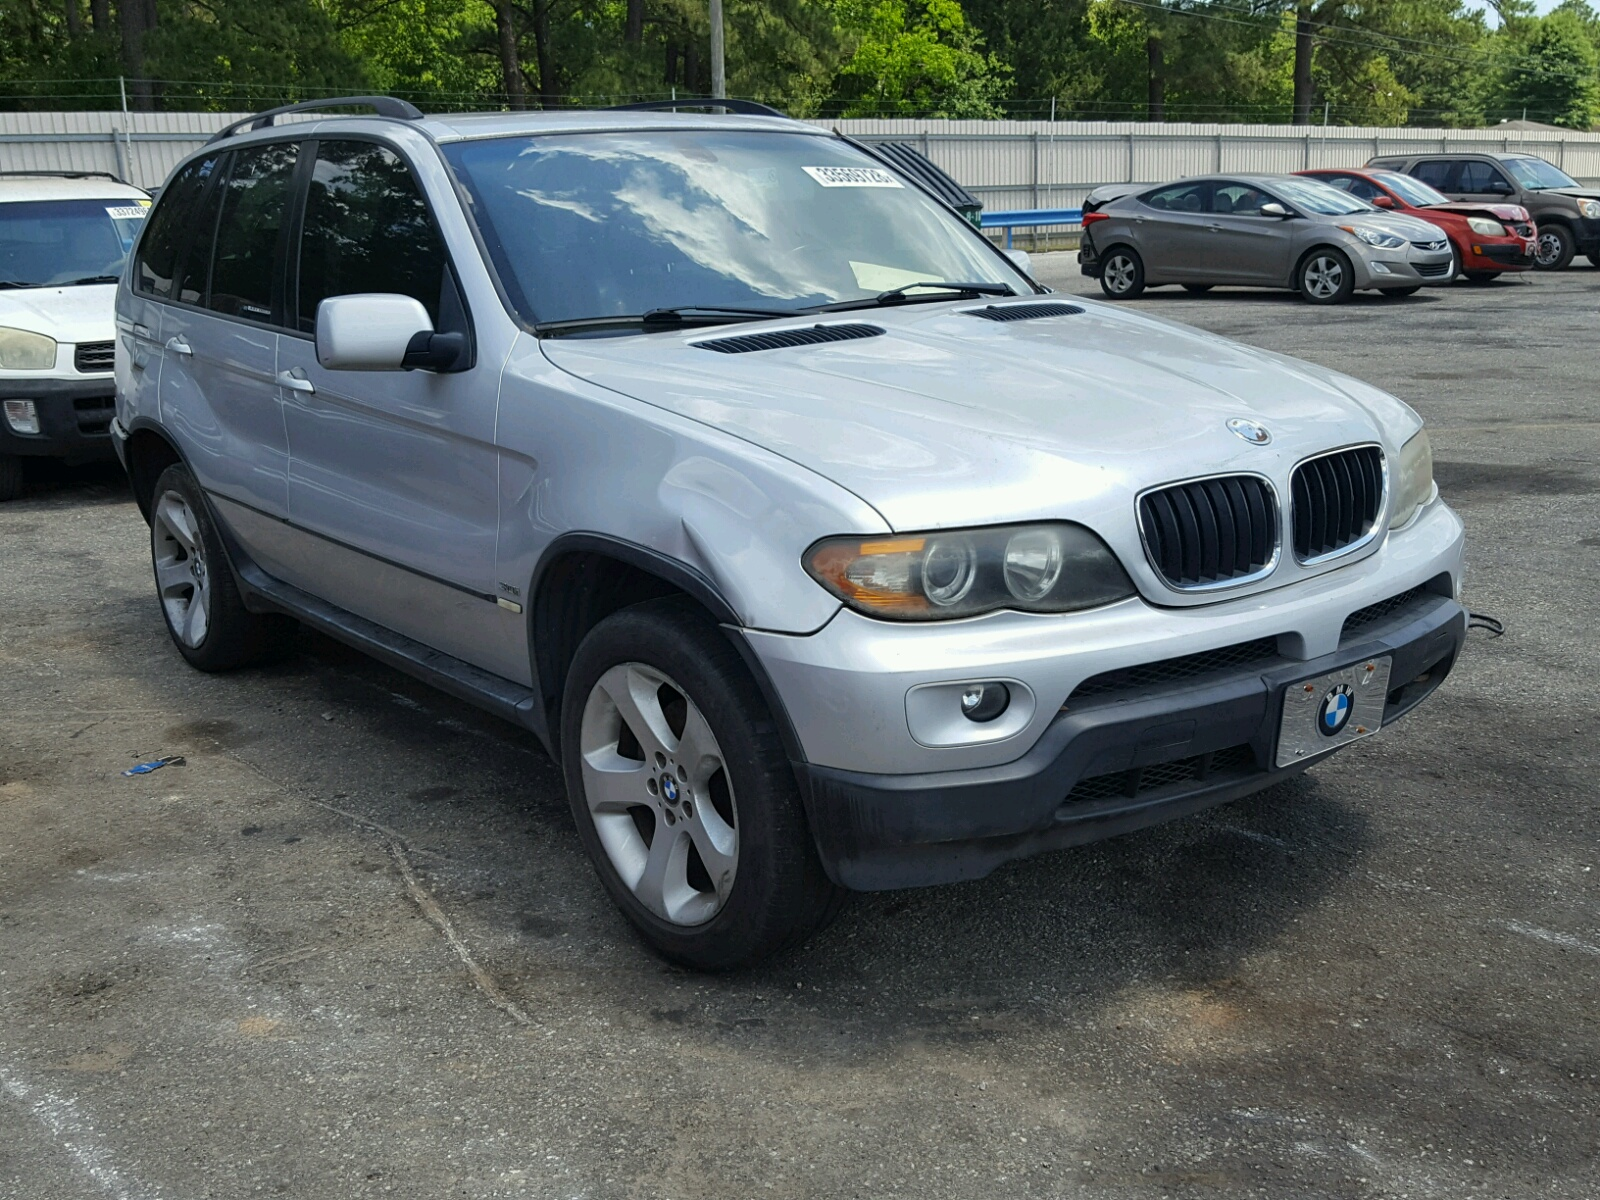 2005 Bmw X5 30I 30L 6 In AL Mobile 5UXFA13565LY22004 For Sale